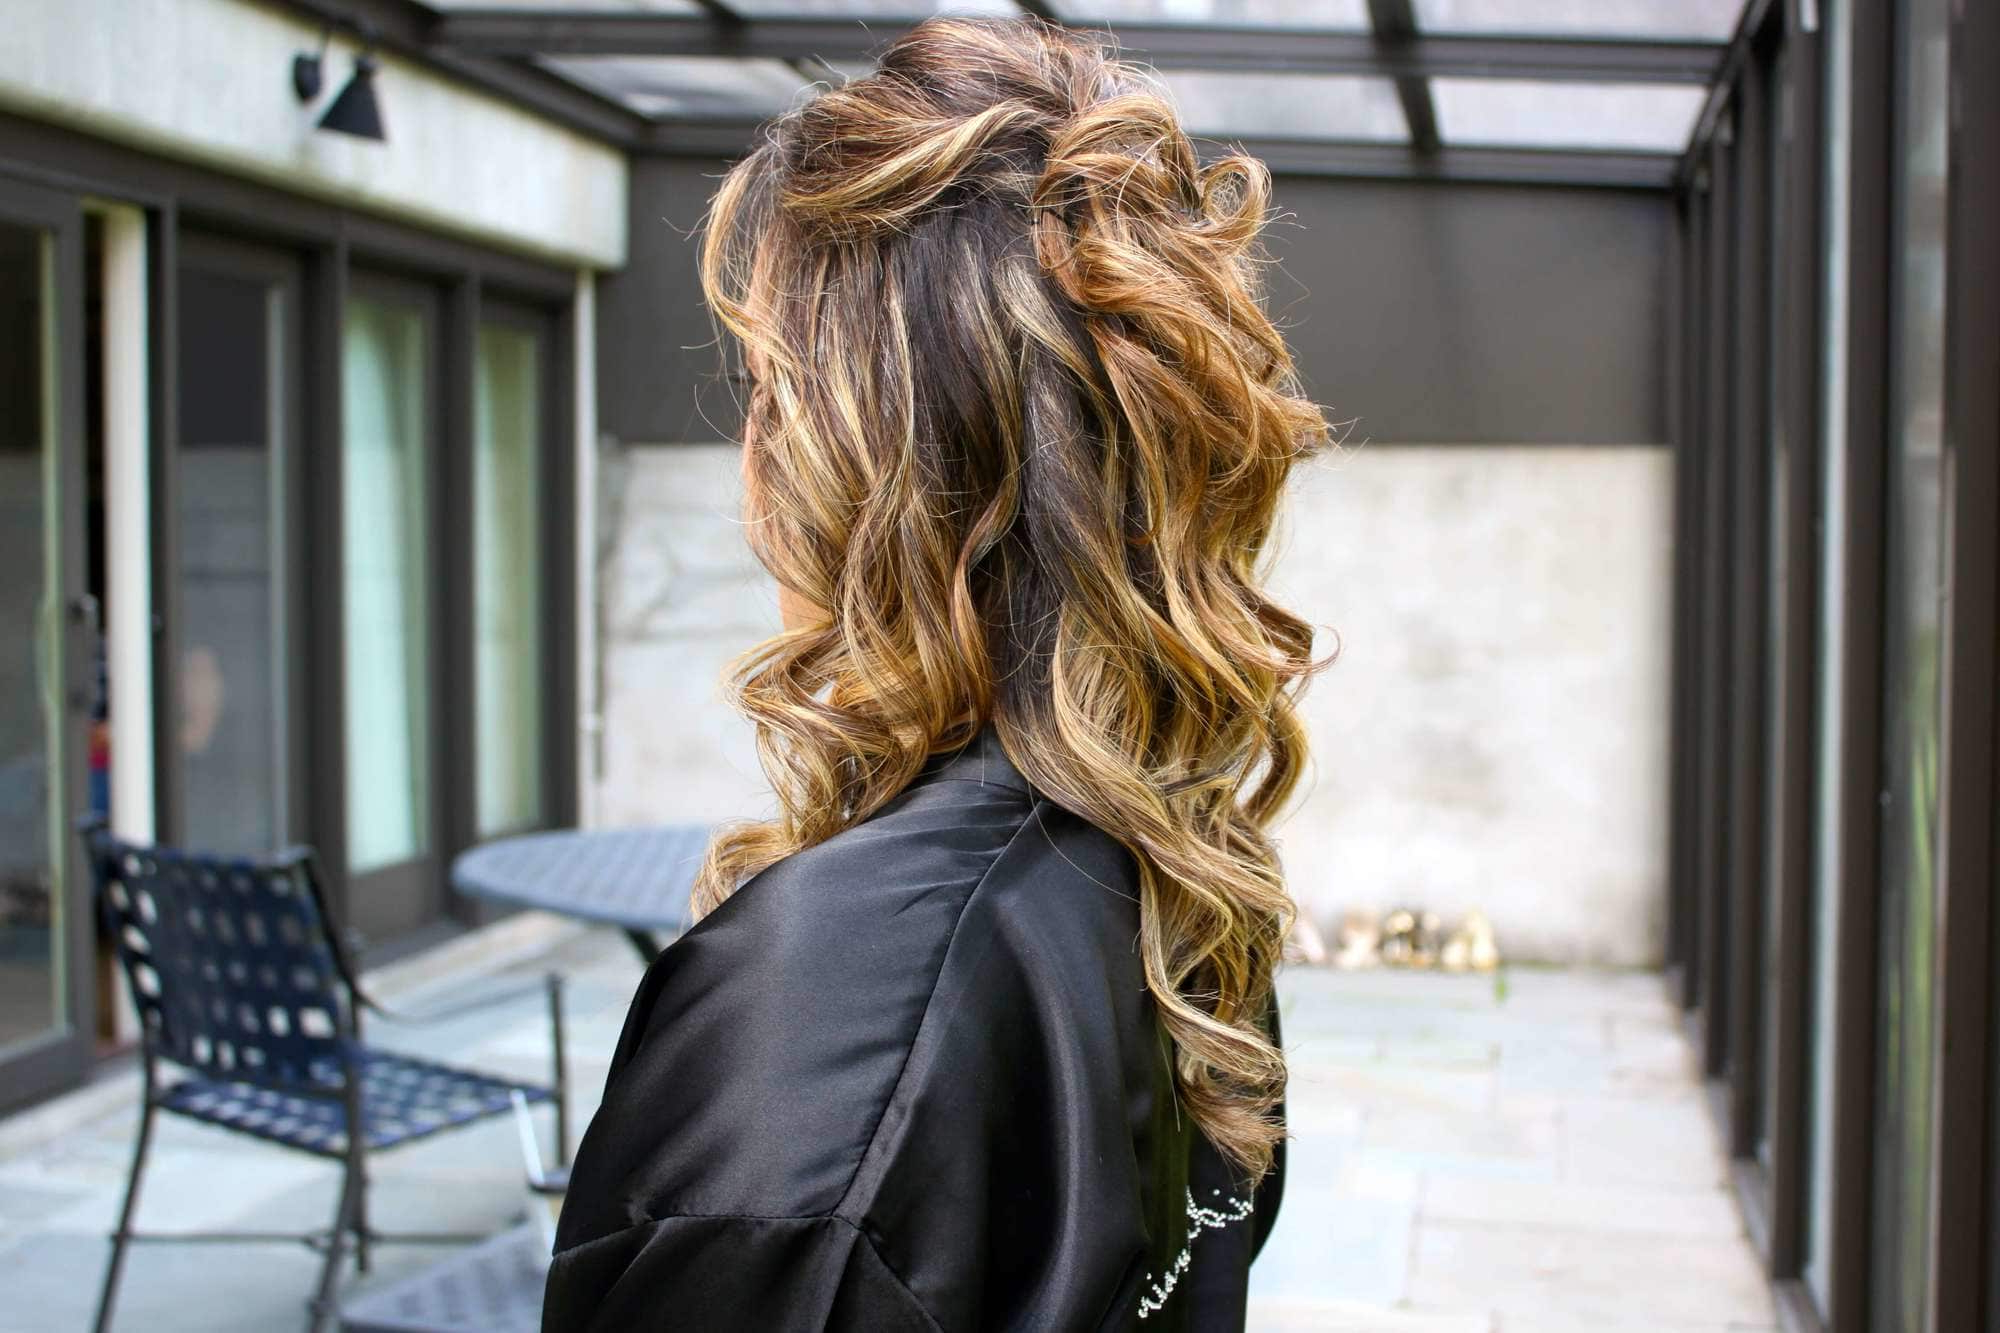 50 Of The Best Balayage: Curly Hair Looks For All Commitment Levels Pertaining To Well Known Half Up Curly Hairstyles With Highlights (Gallery 5 of 20)